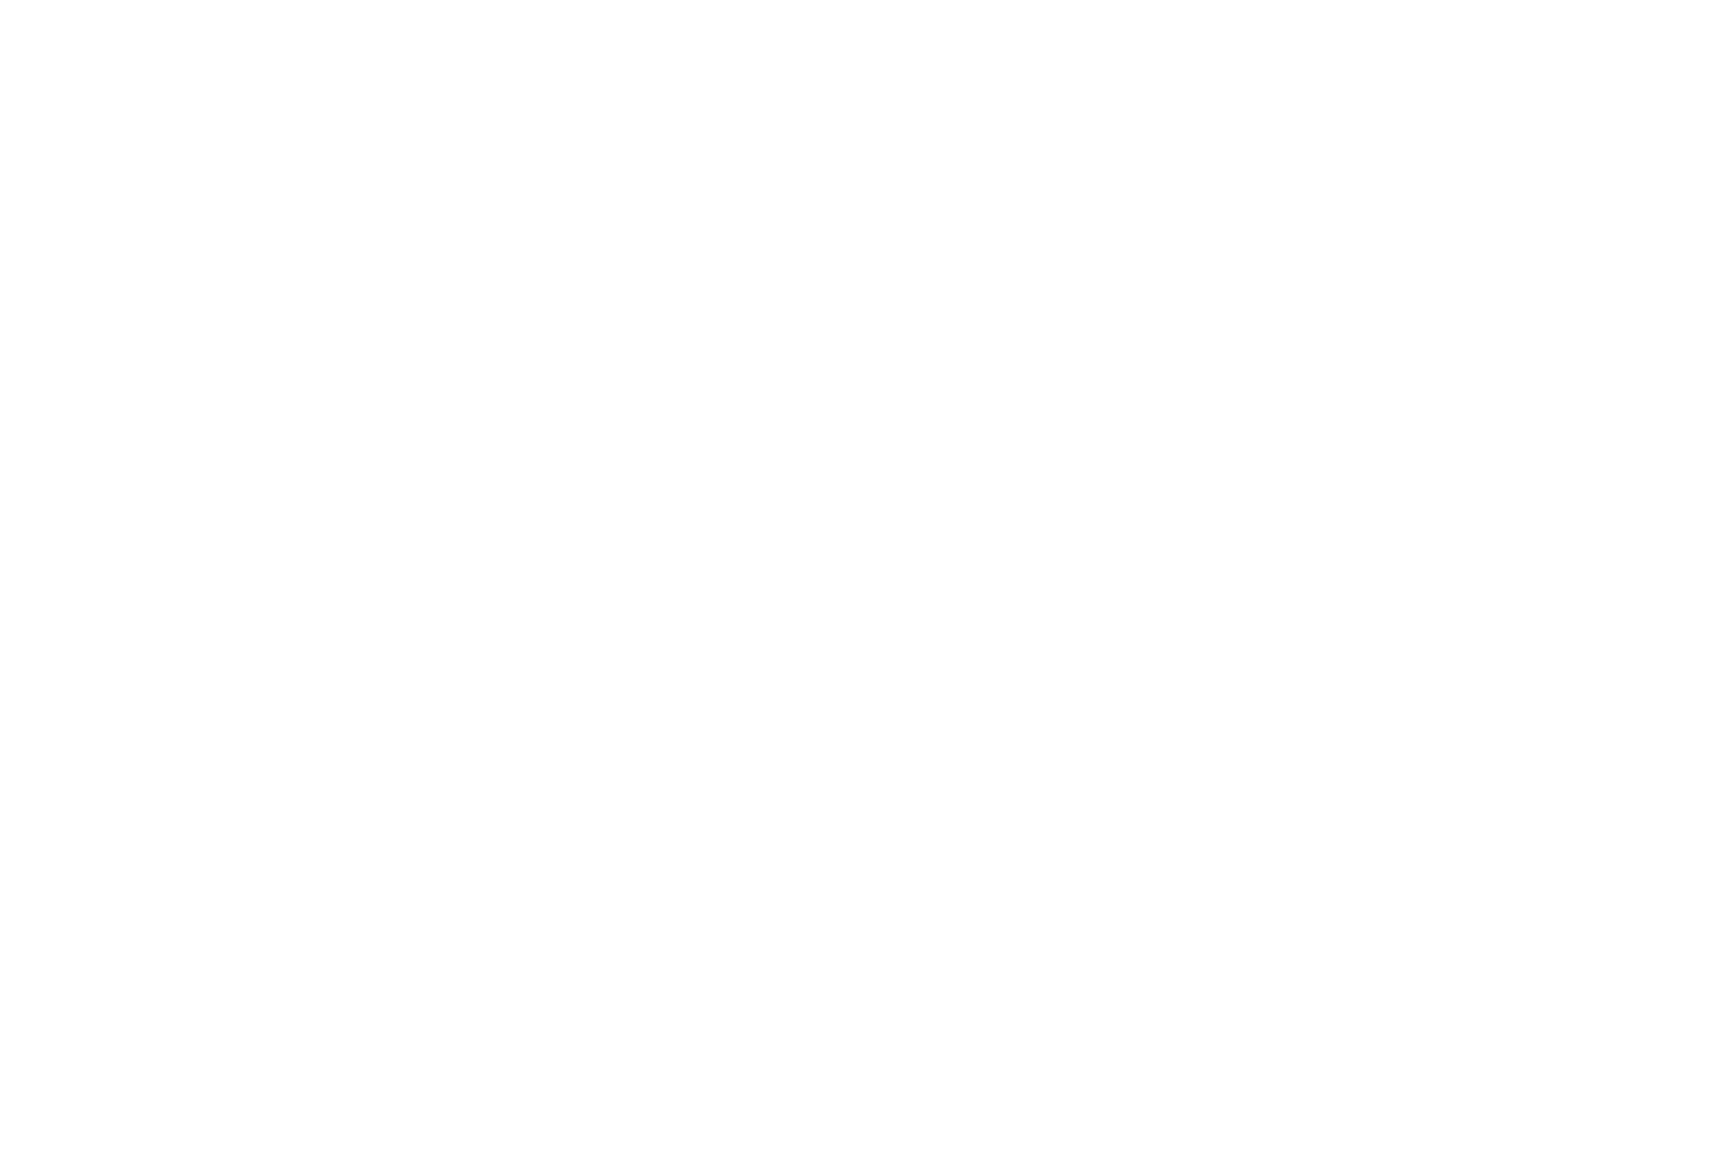 OFFICIAL SELECTION - Best Shorts Competition - 2016.png